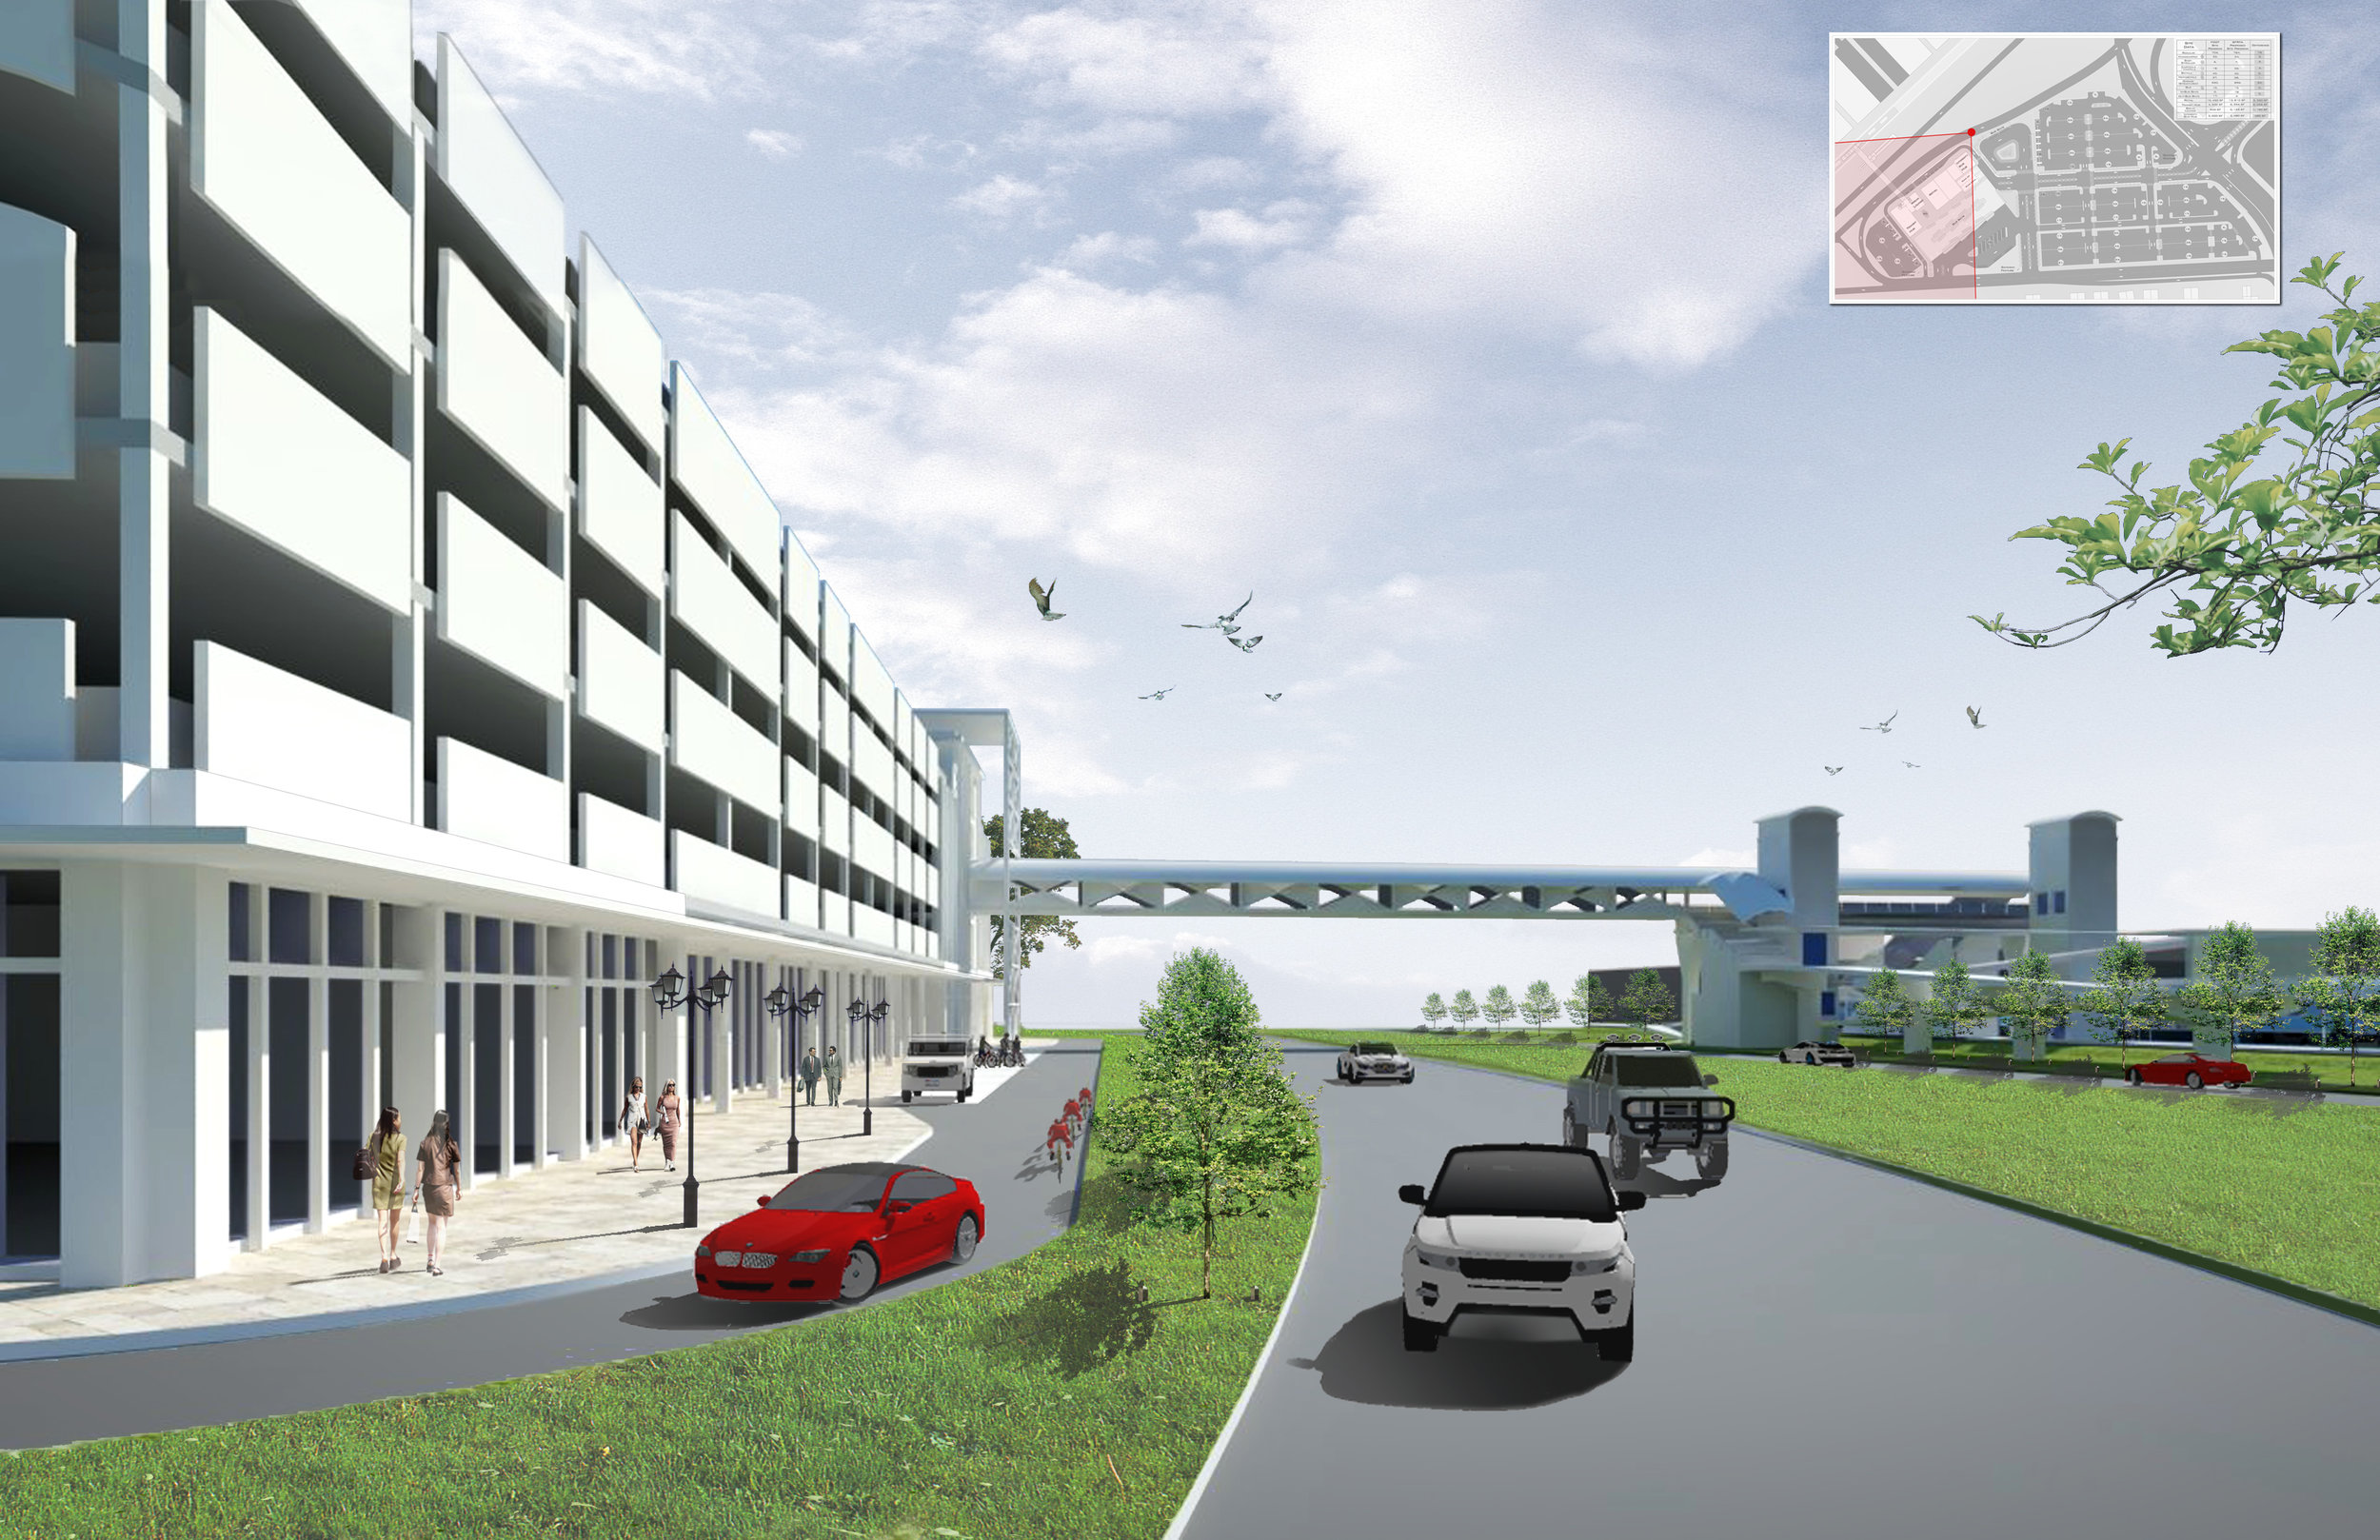 Ground Floor Retail in Parking Facility (pedestrain link and station beyond)